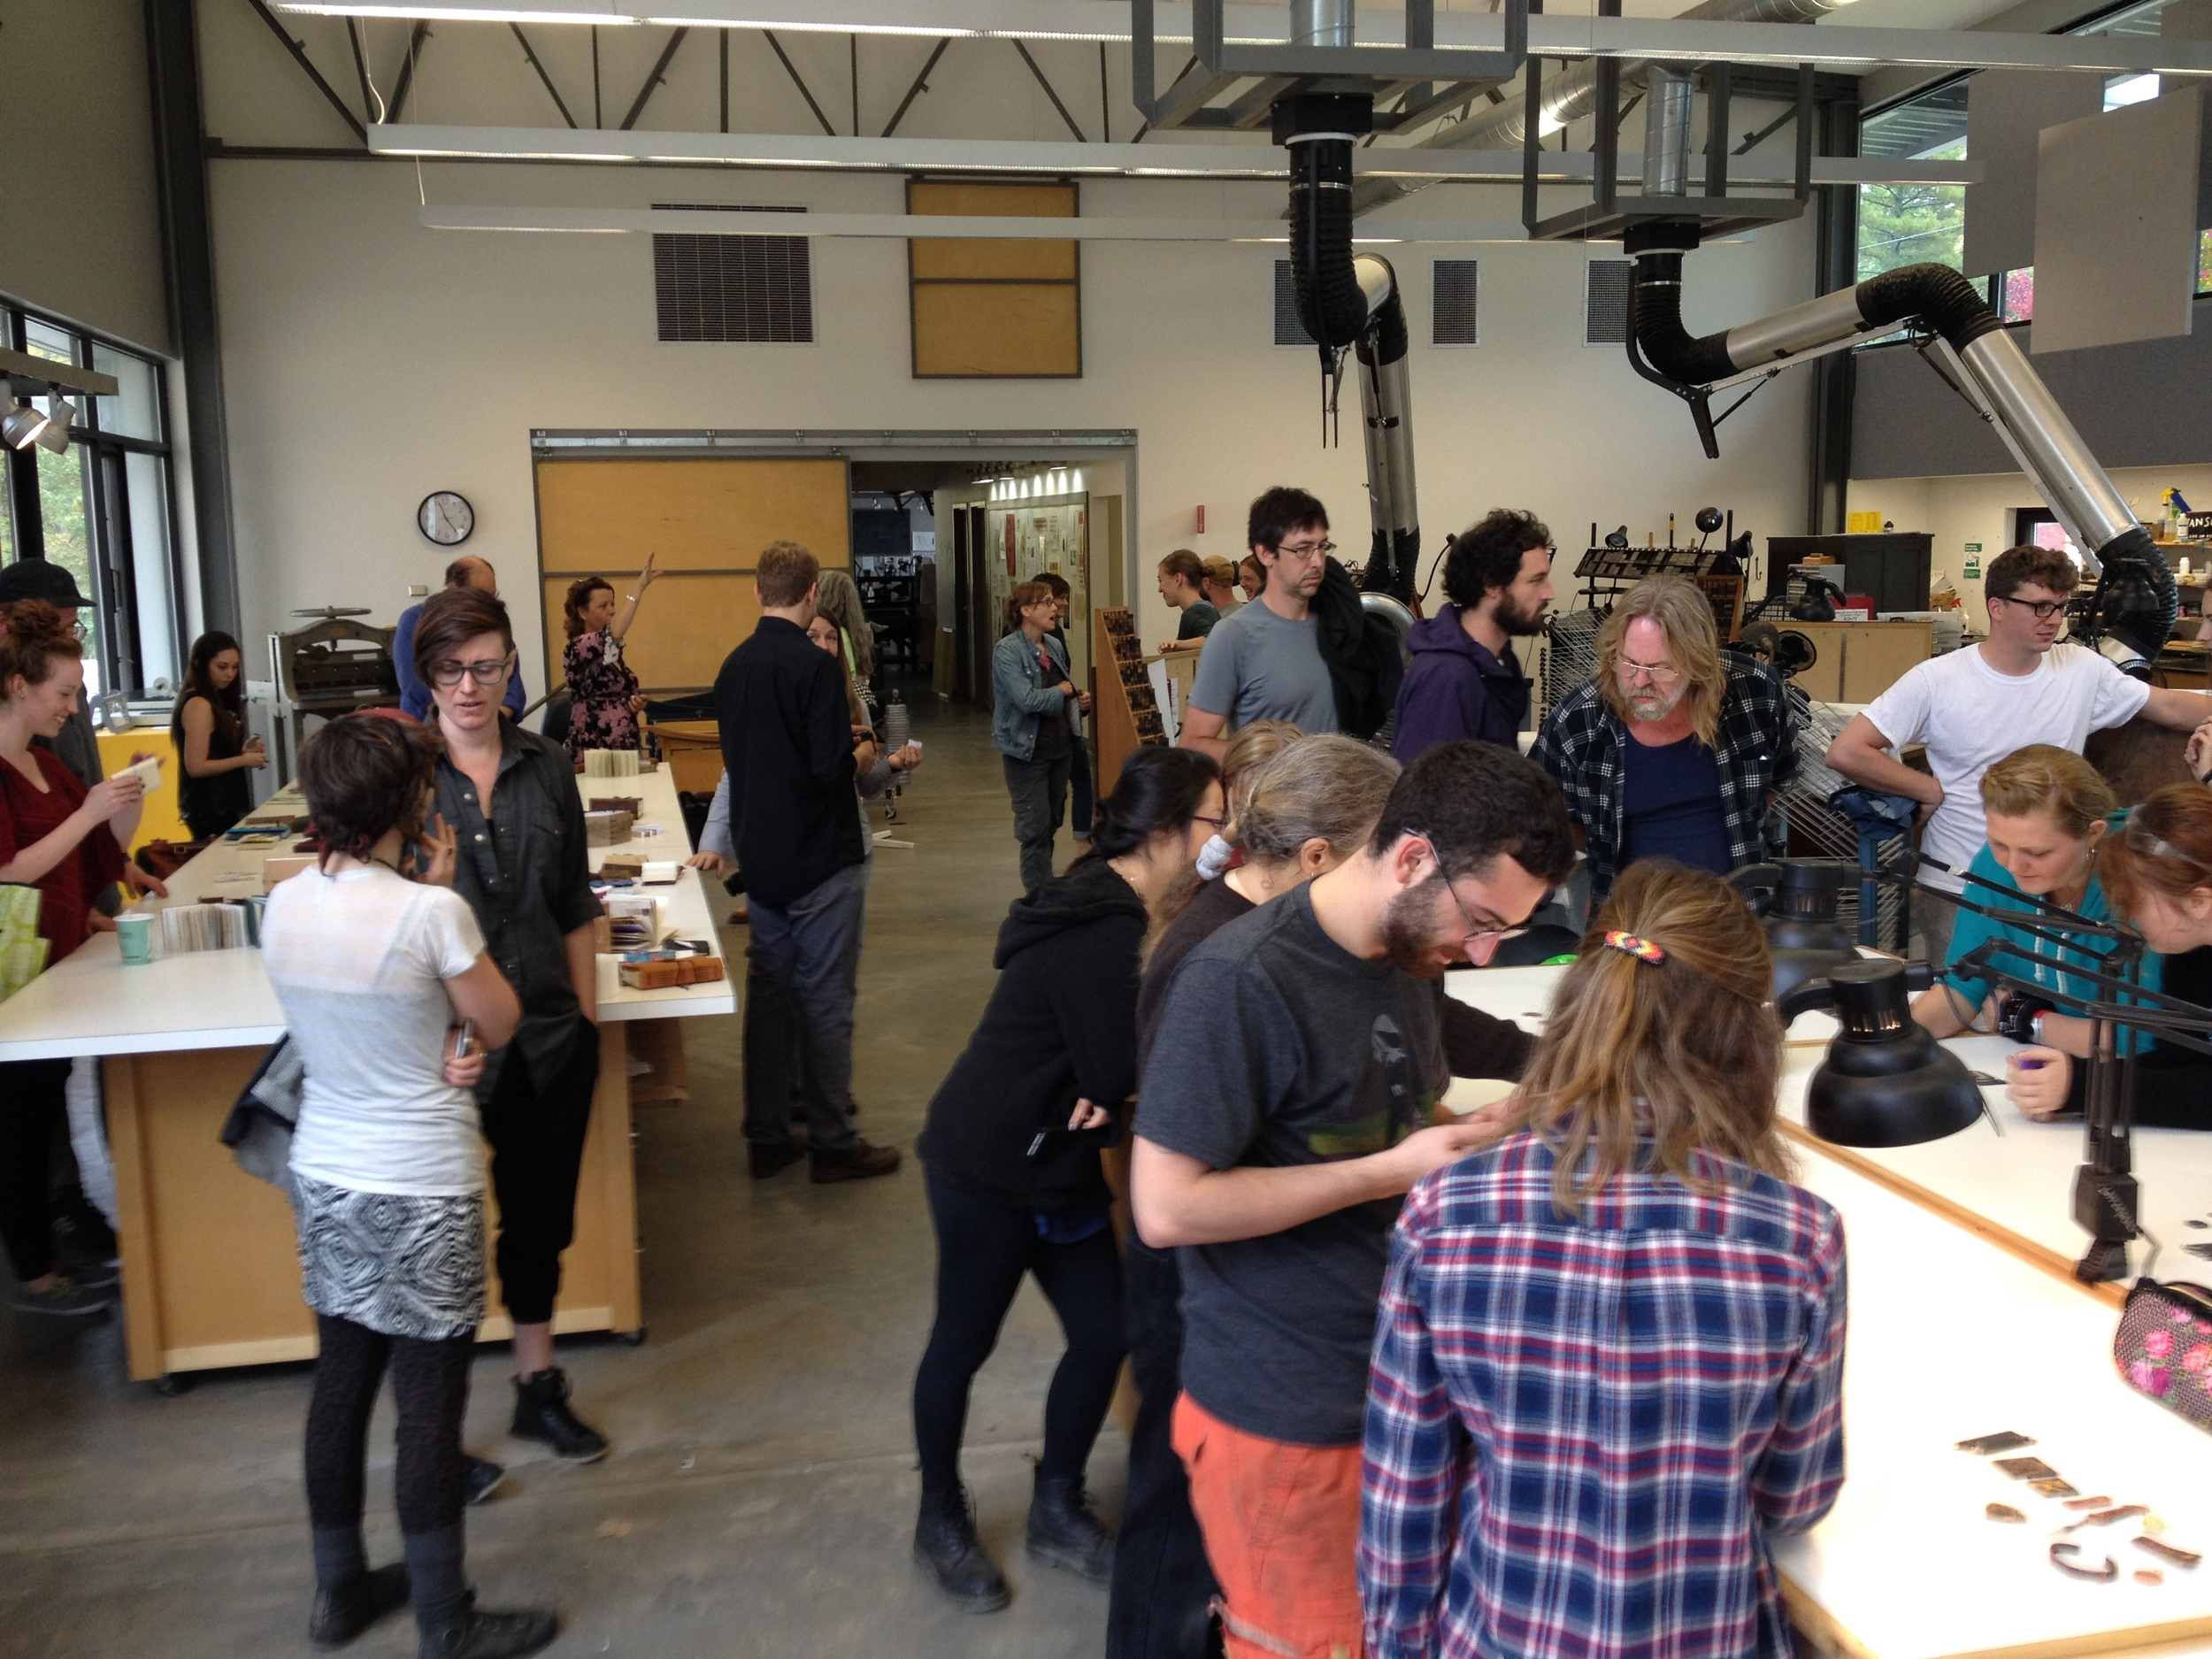 Our final show and tell took place in the gorgeous new printing studio.